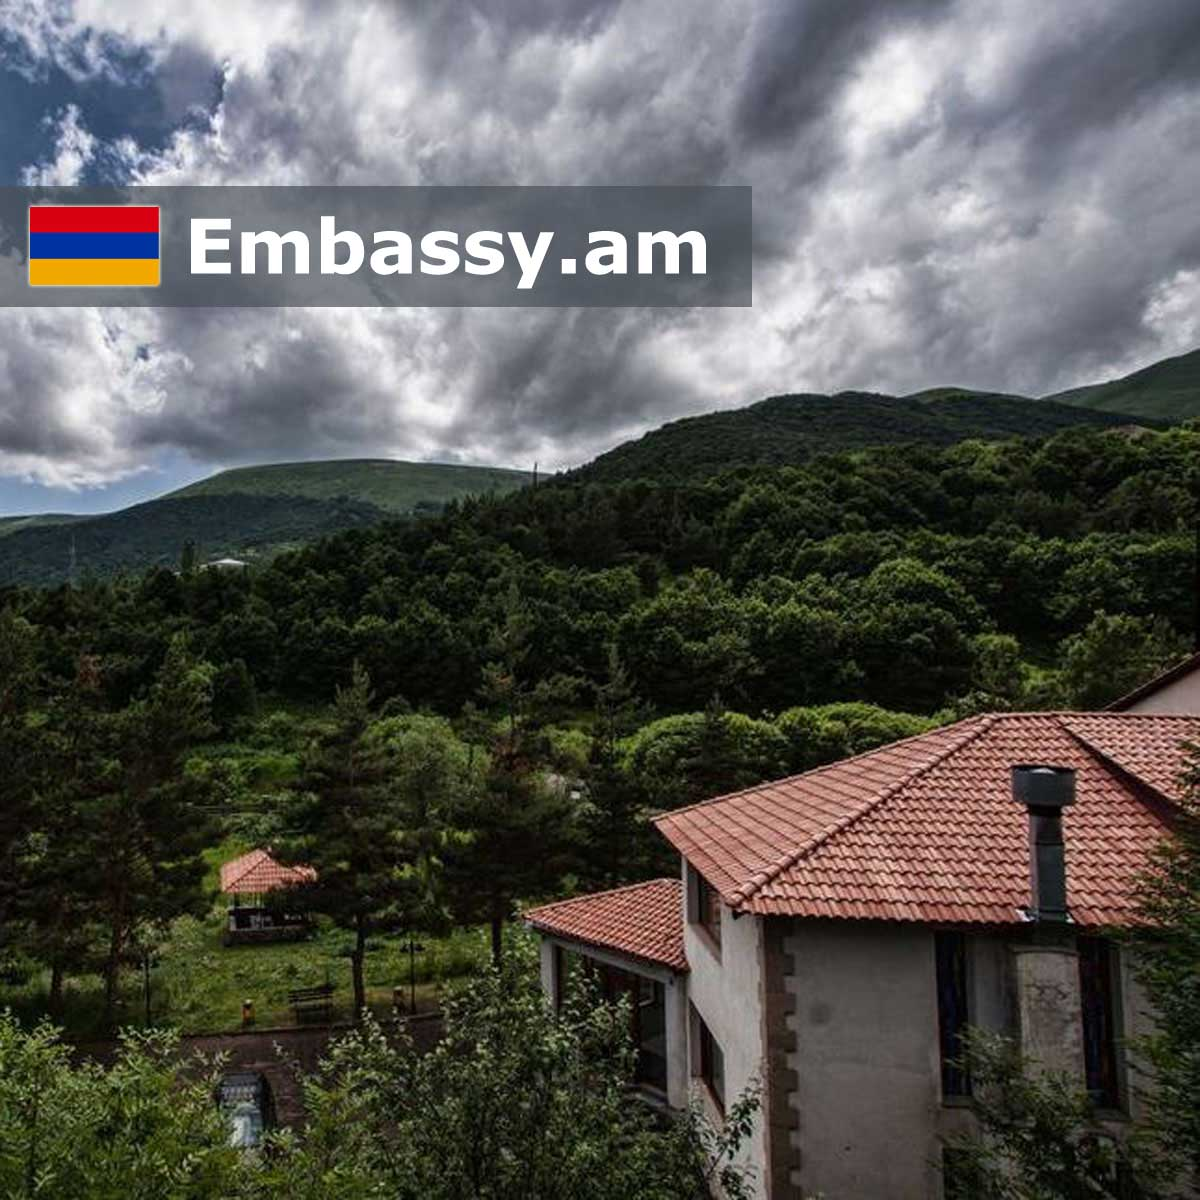 Aghveran - Hotels in Armenia - Embassy.am